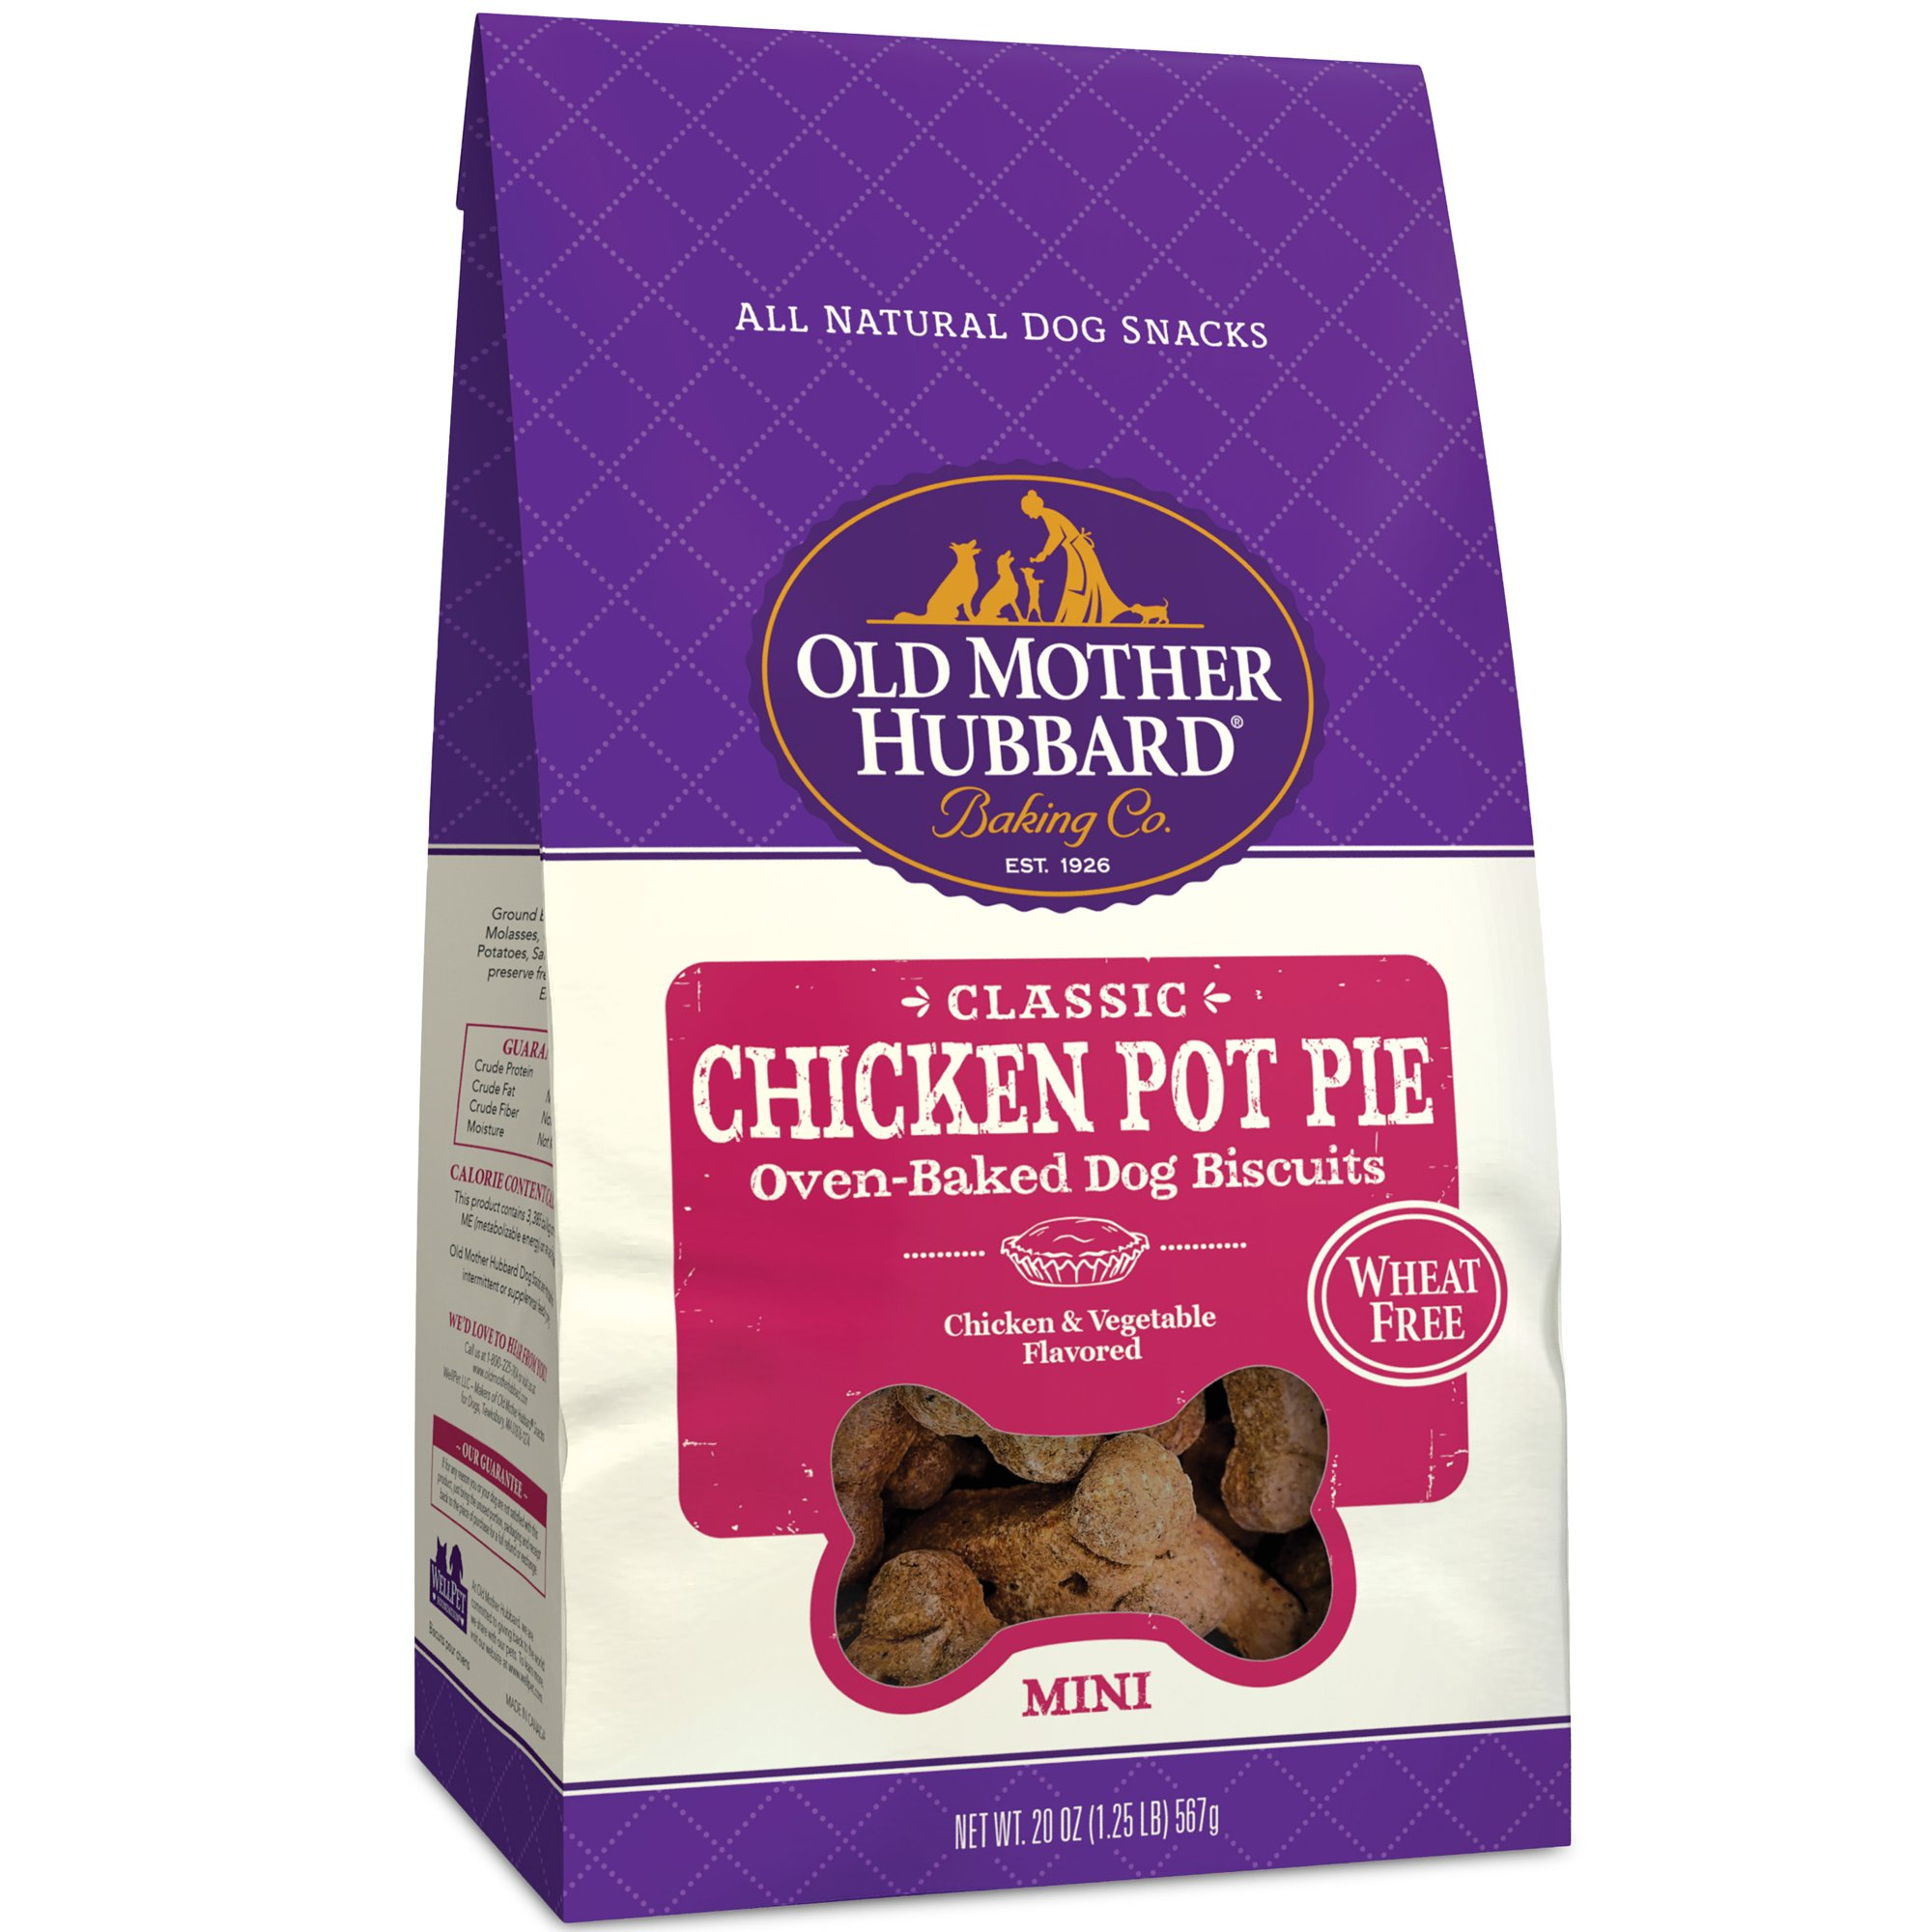 Old Mother Hubbard Mini Classic Chicken Pot Pie Biscuits Baked Dog